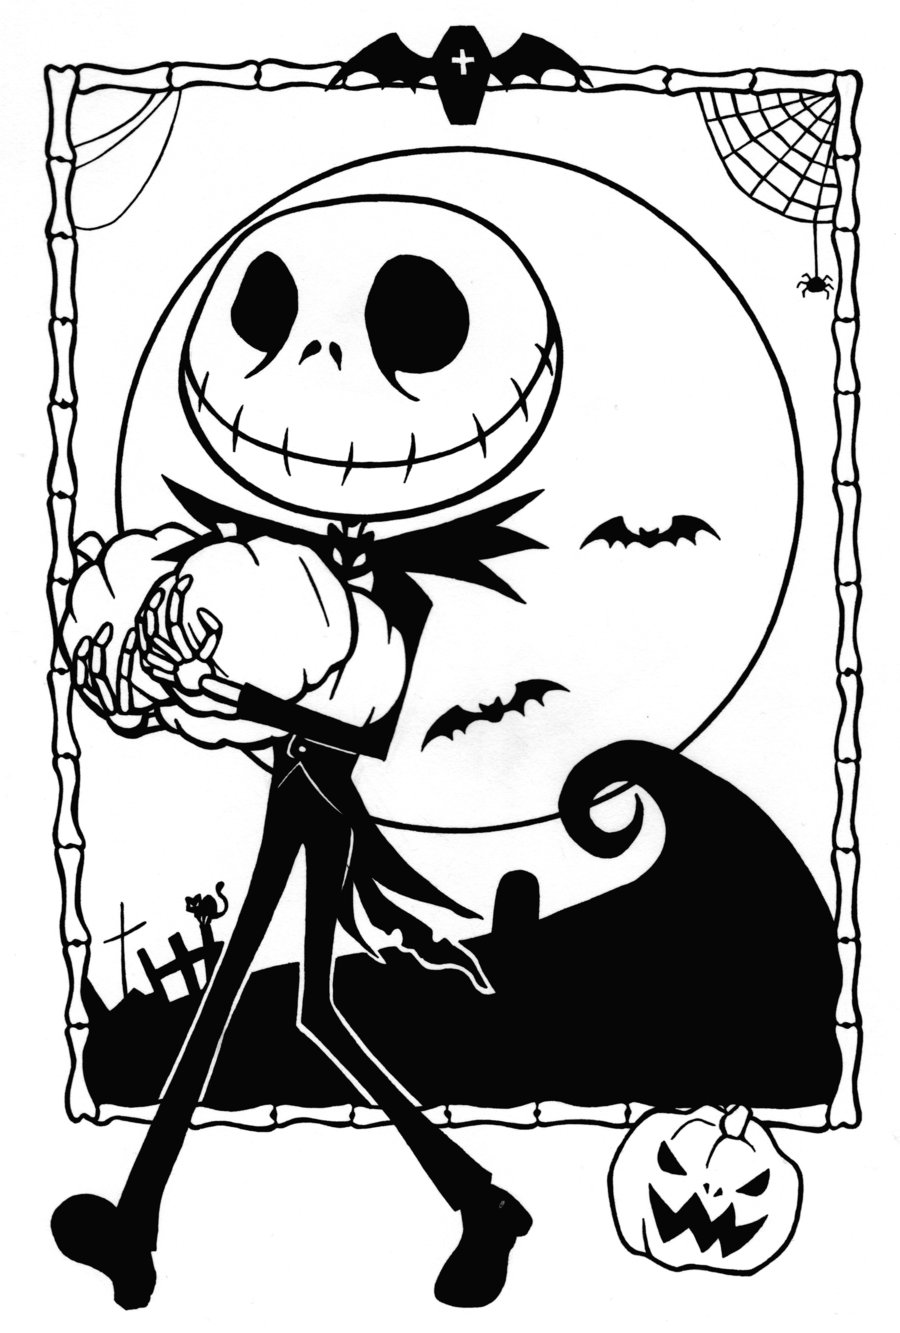 Free printable coloring pages nightmare before christmas - Free Printable Nightmare Before Christmas Coloring Pages